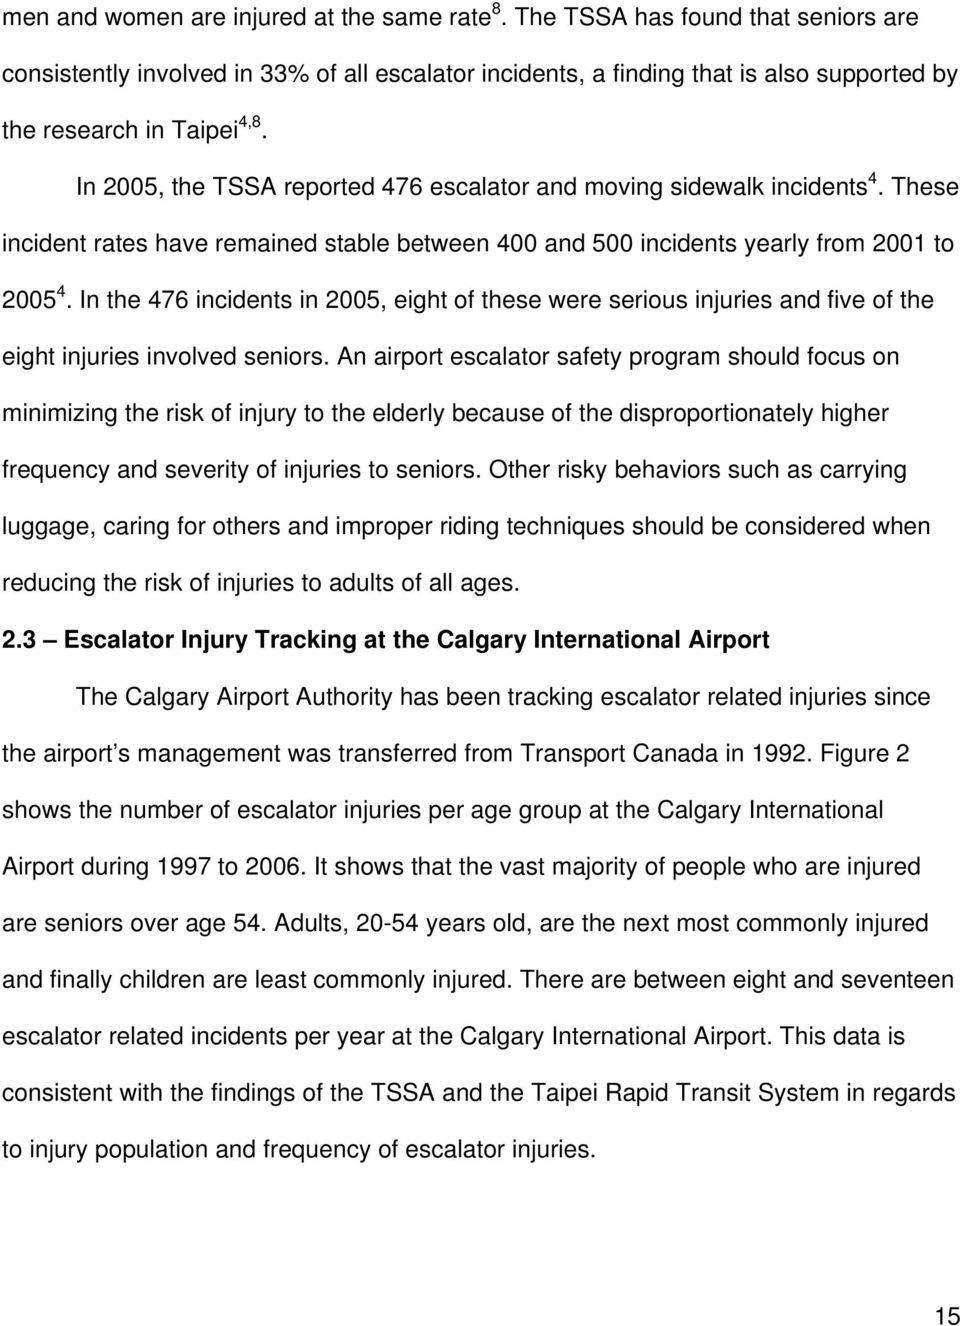 In 2005, the TSSA reported 476 escalator and moving sidewalk incidents 4. These incident rates have remained stable between 400 and 500 incidents yearly from 2001 to 2005 4.